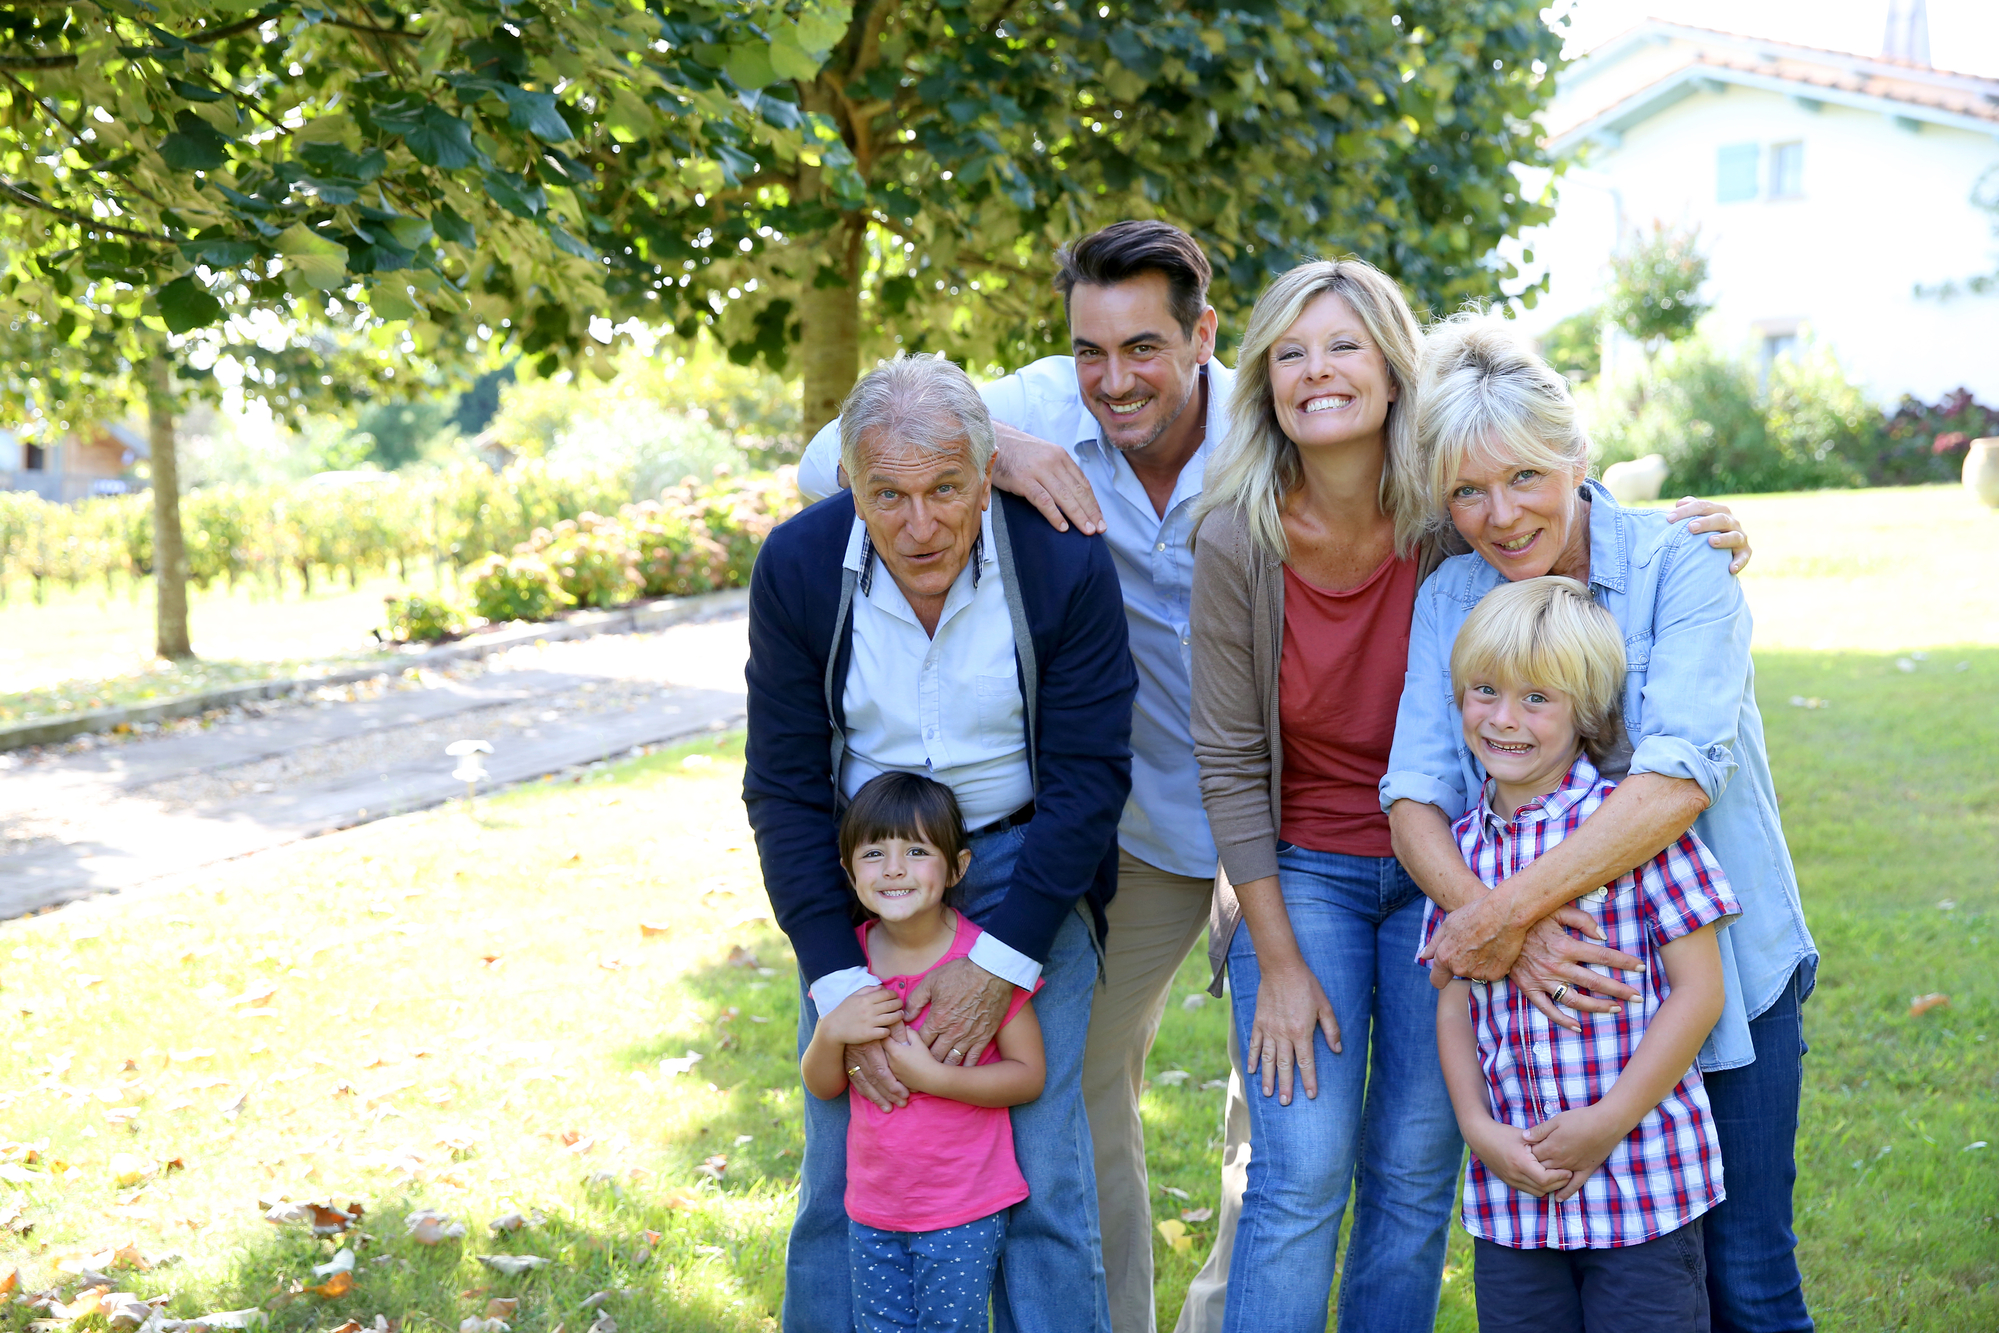 Multi-generational family in a park